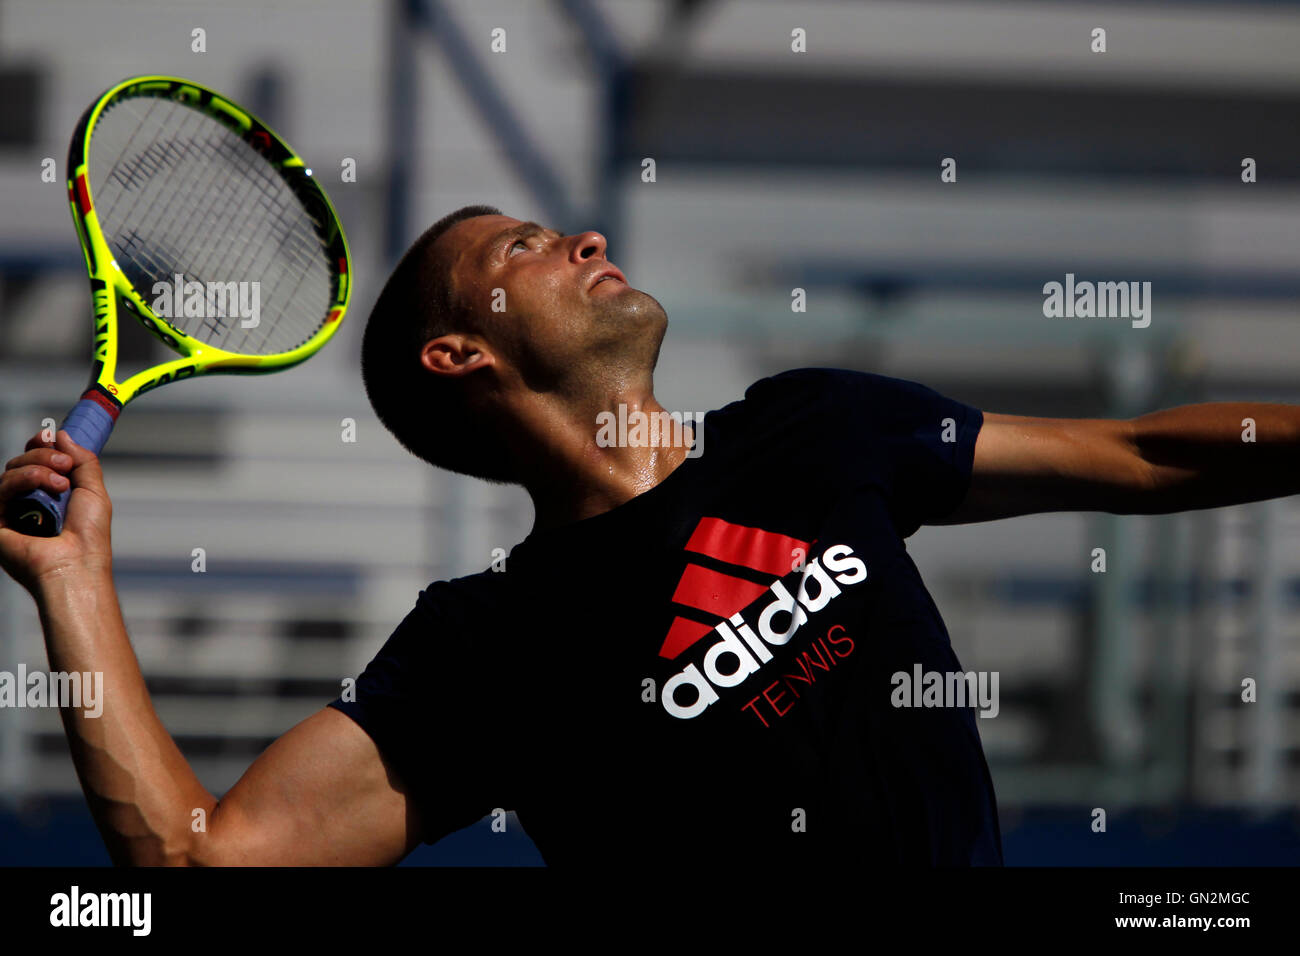 New York, USA. 27th August, 2016. Russia's Mikhail Youzhny serves during a practice session Saturday, August - Stock Image